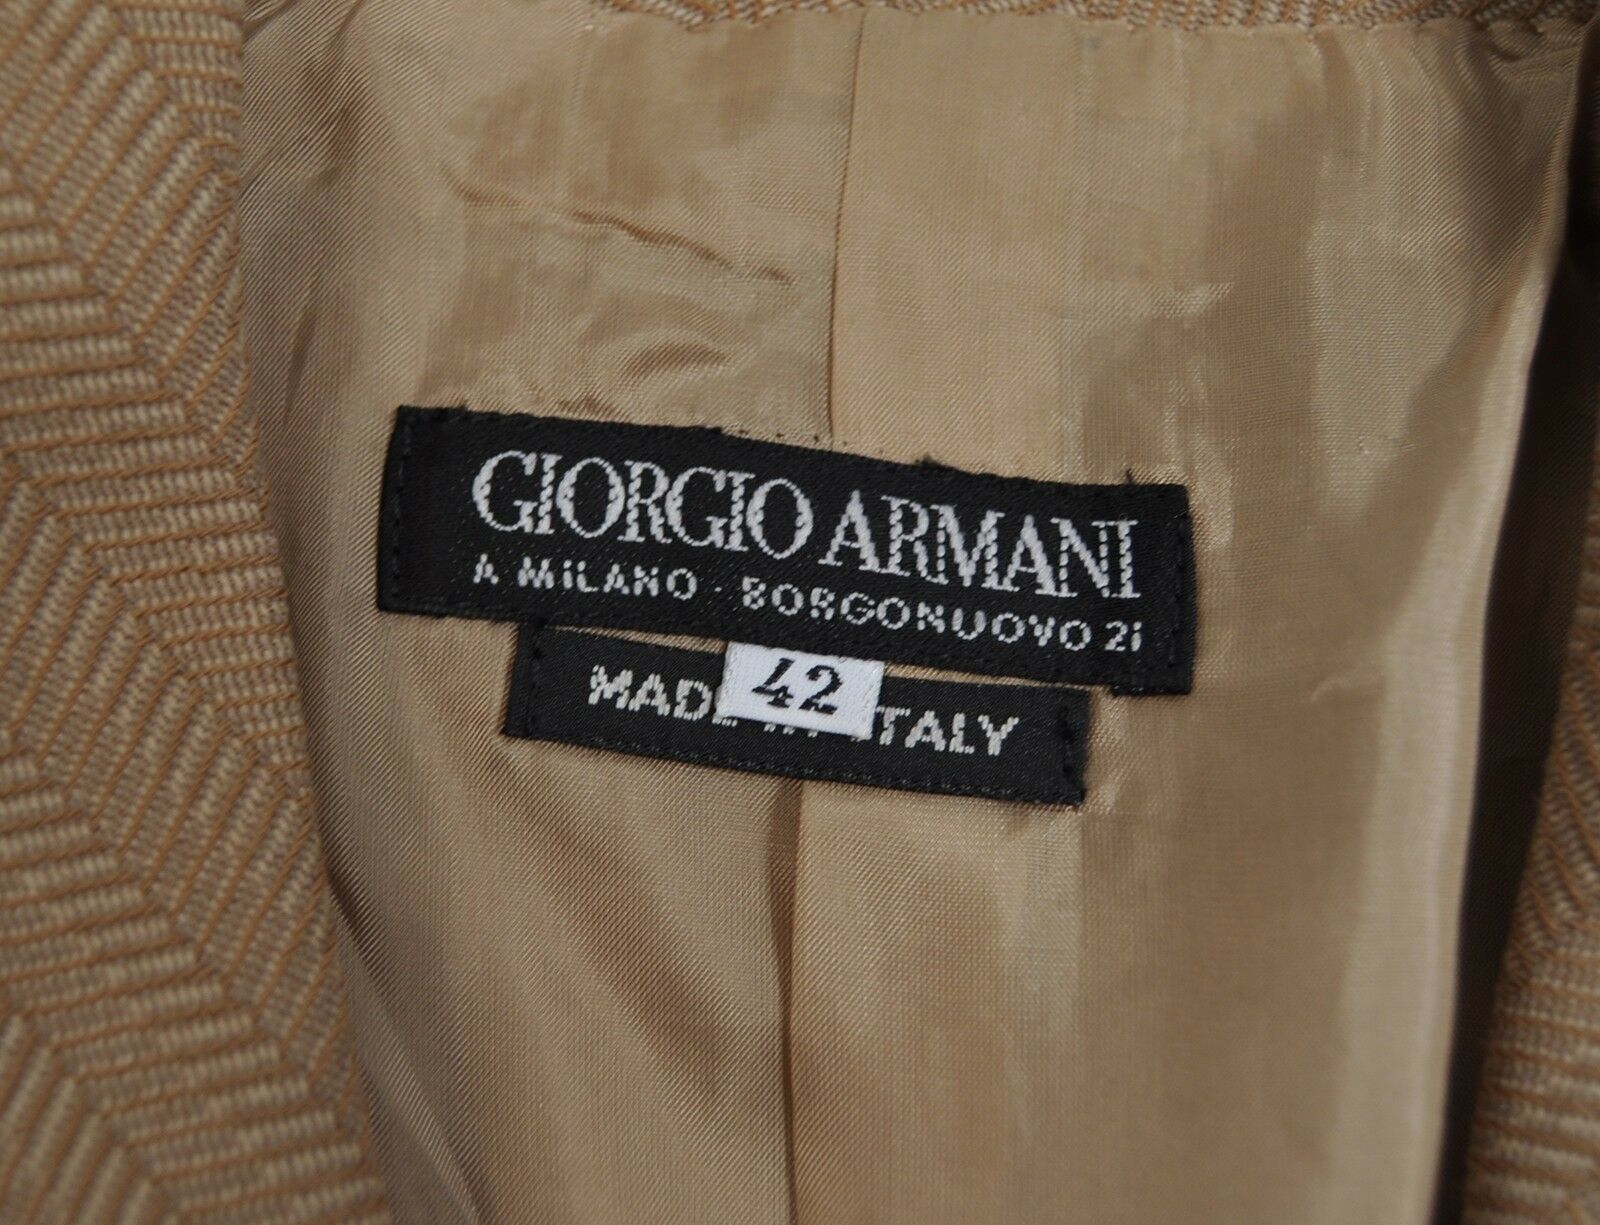 Giorgio Armani Black Label Herringbone Beige Jacket Pants Suit 42 Italy Womens